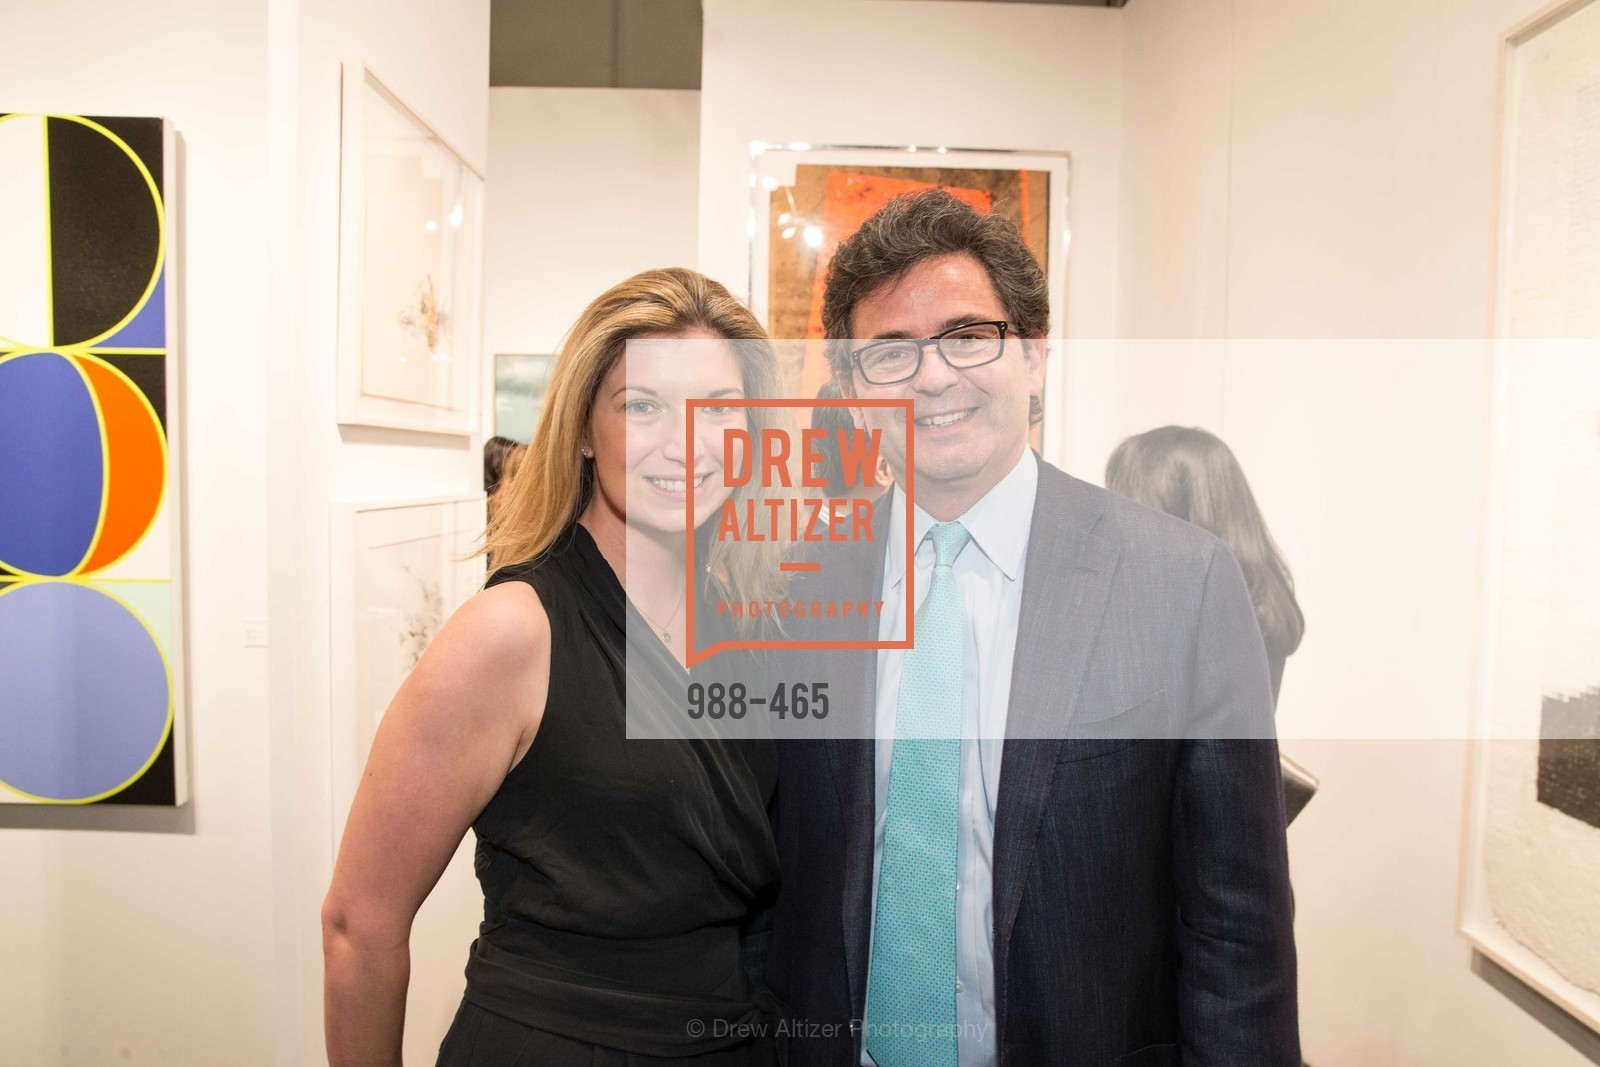 Cameron Phleger, George Cogan, FOG Design + Art Preview Gala, US. US, January 16th, 2014,Drew Altizer, Drew Altizer Photography, full-service agency, private events, San Francisco photographer, photographer california